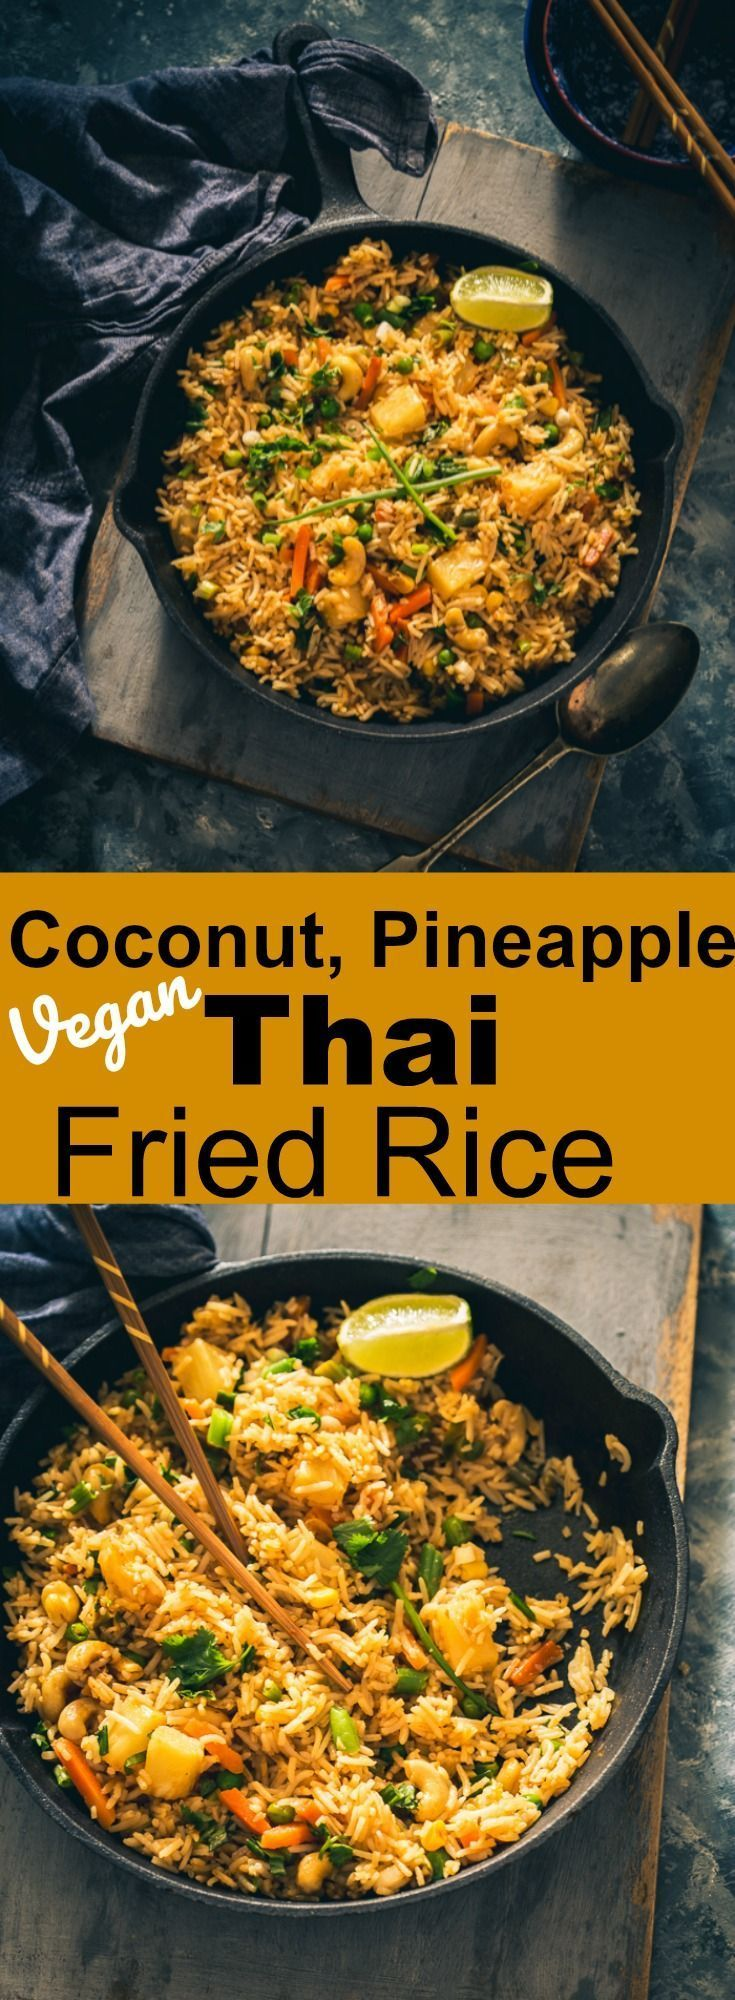 Coconut Pineapple Thai Fried Rice